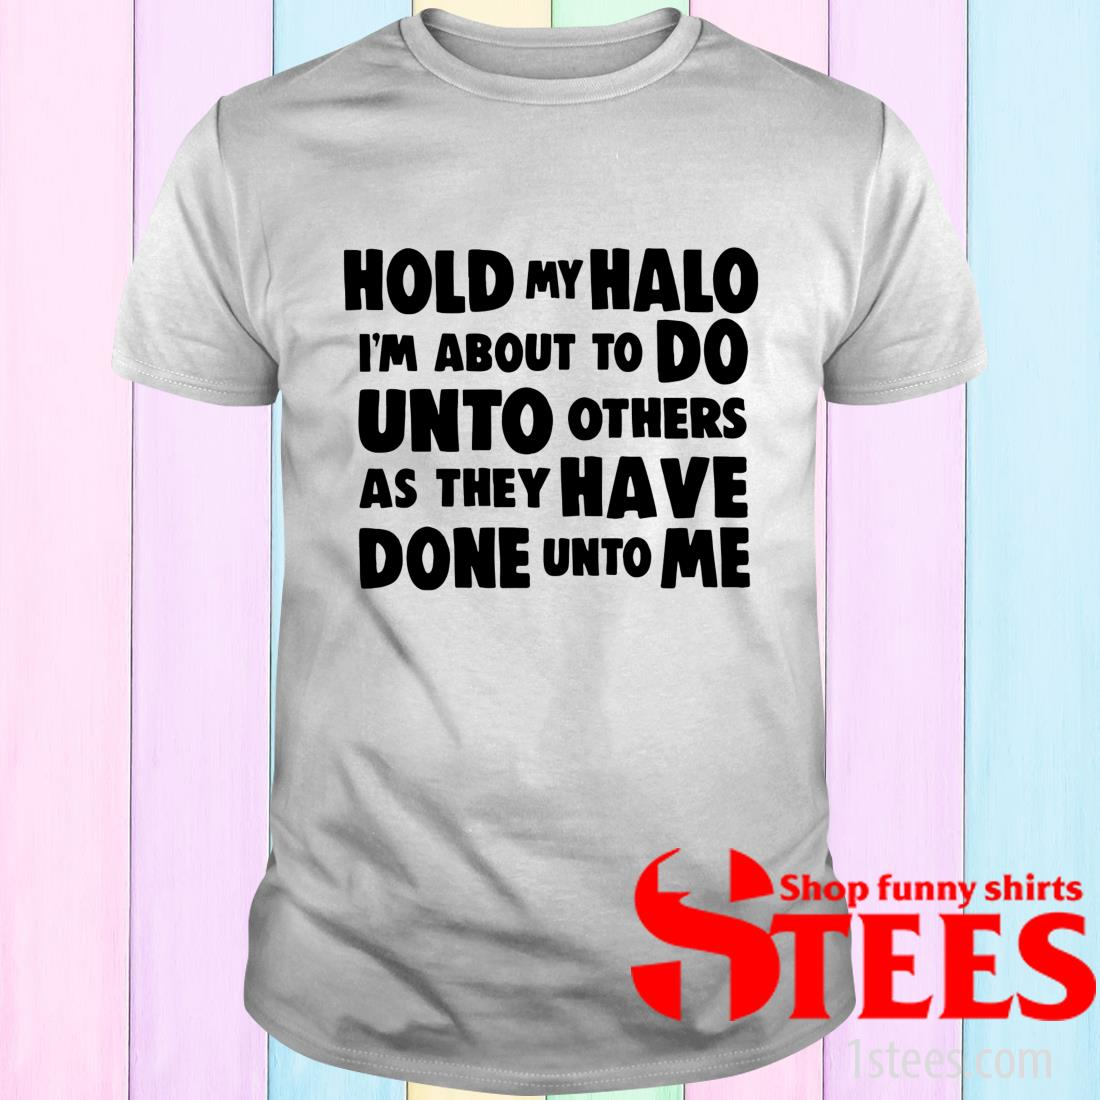 Hold My Halo I'm About To Do Unto Others As They T-Shirt